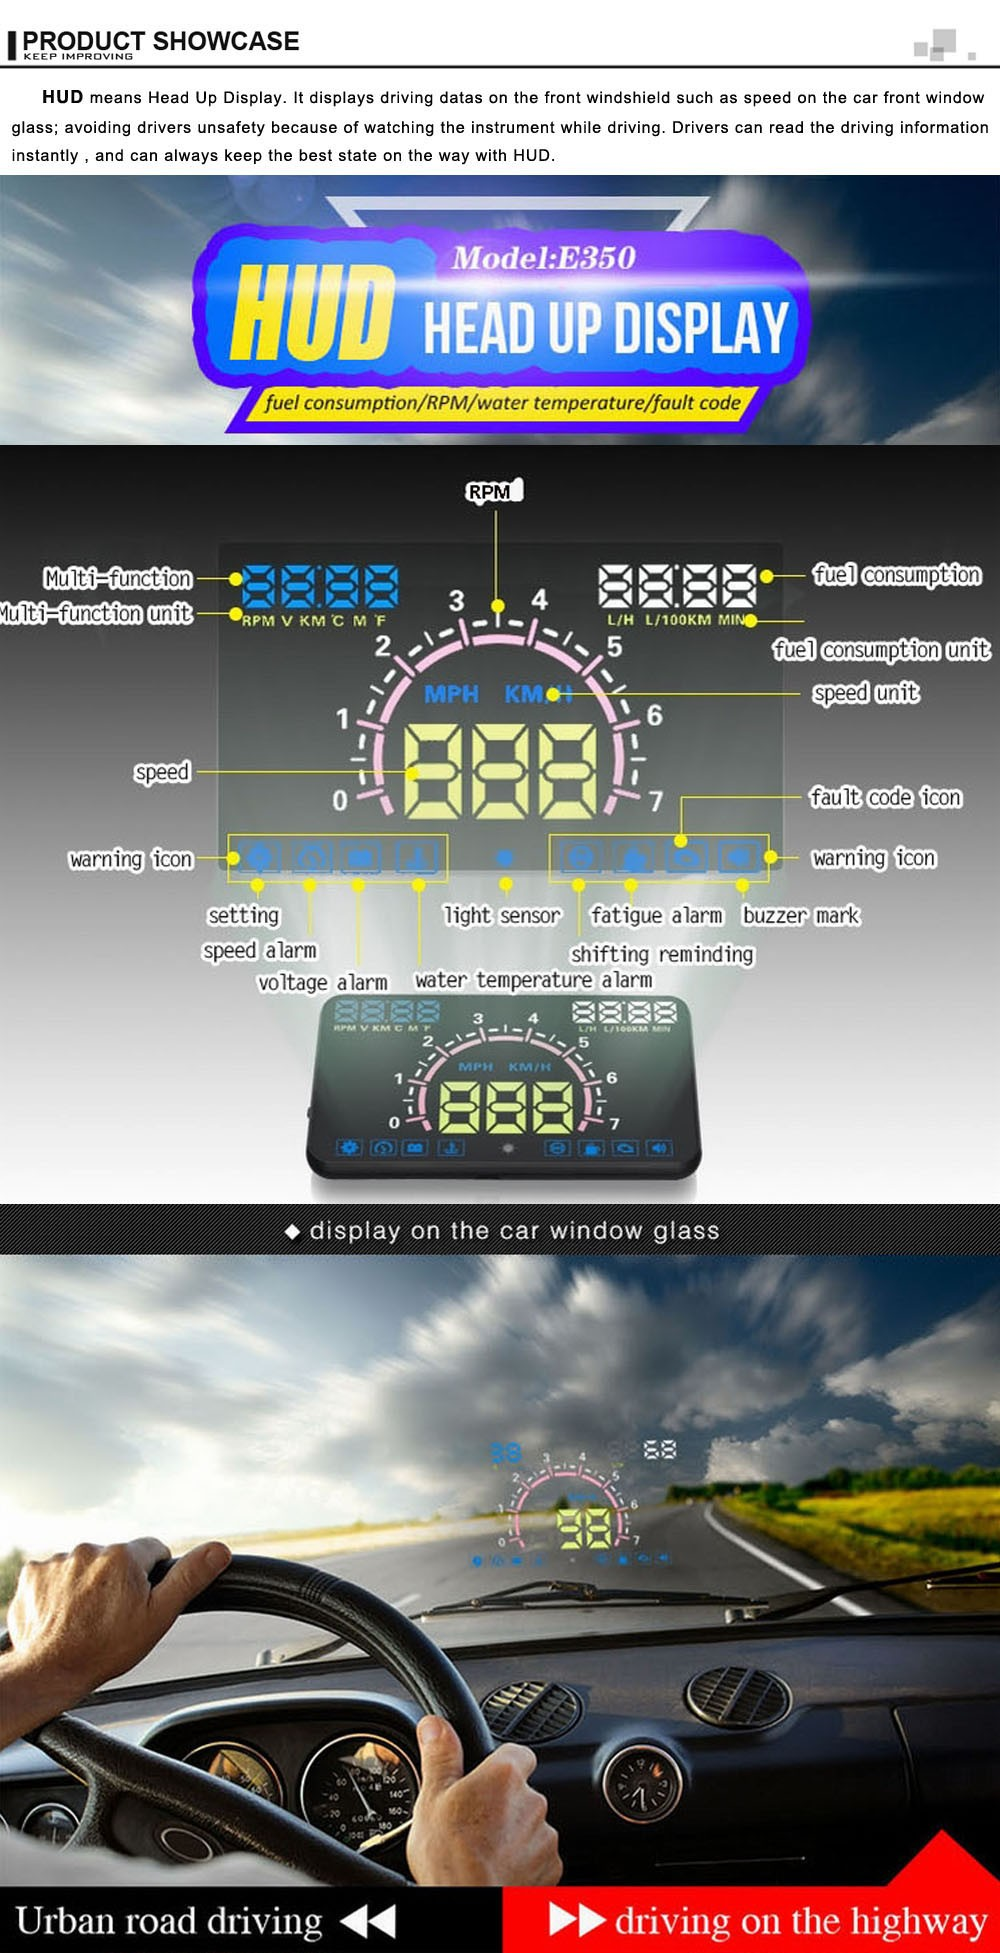 5.8 Inch E350 HUD head up display, multi-functional projection on car windshield projector